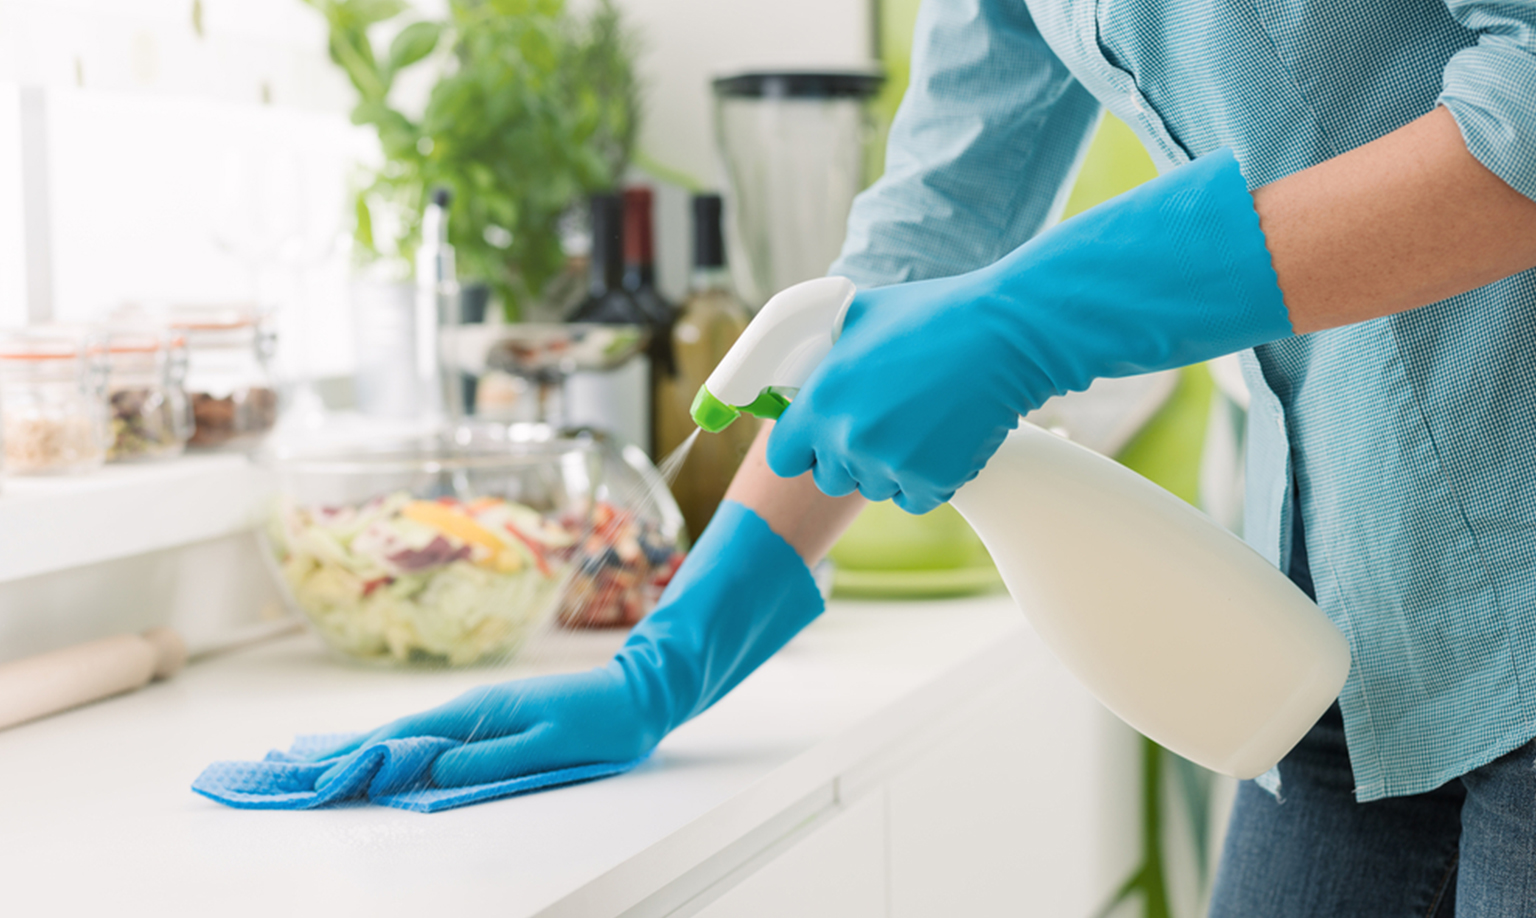 Understanding Dwell Time When Disinfecting